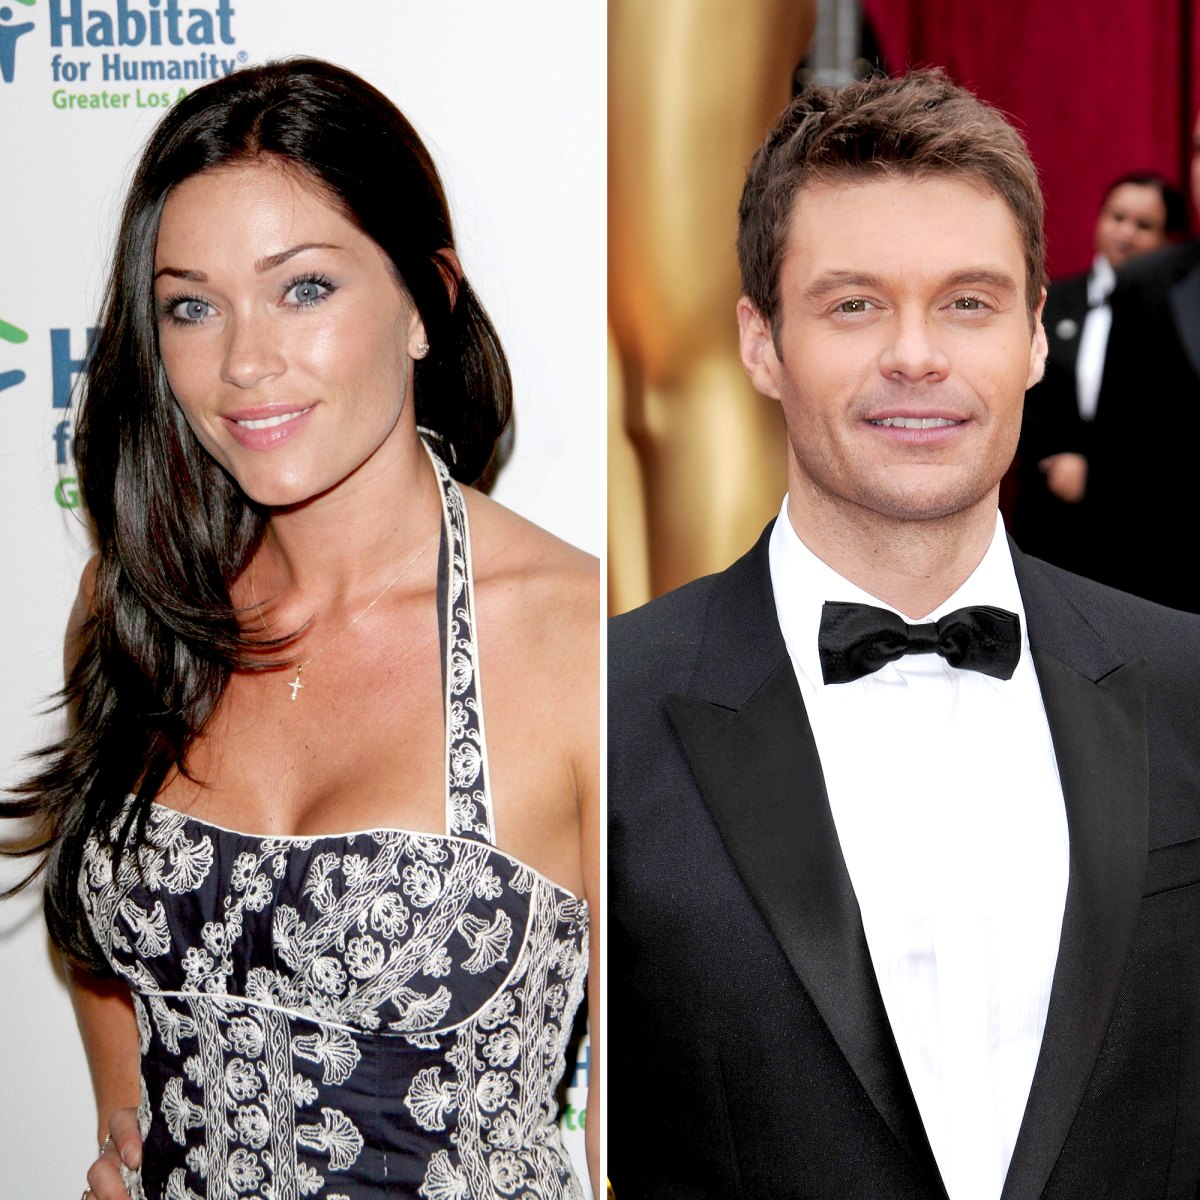 Ryan seacrest dating history consolidating payments